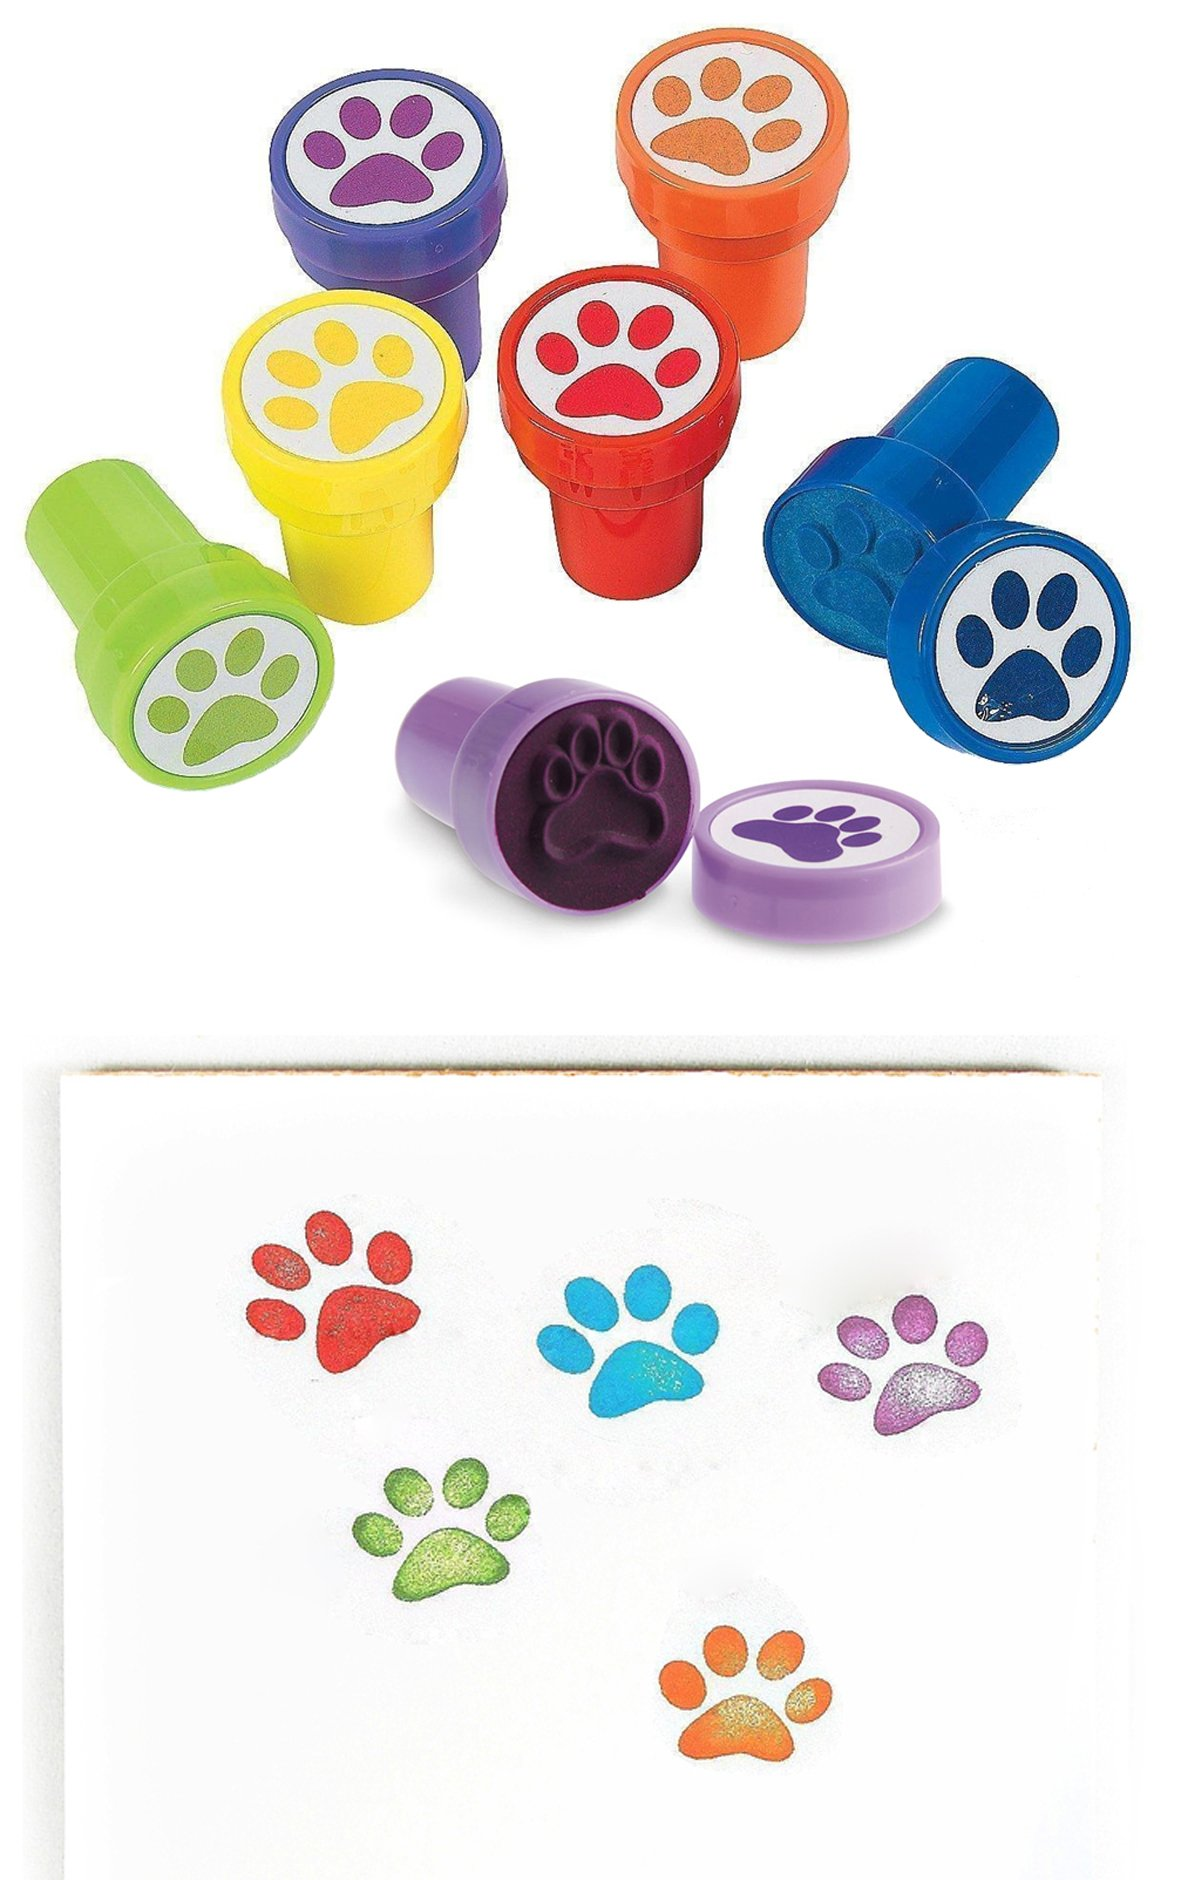 Animal Paw Print Stamper Stamps - Pack of 24 Pieces